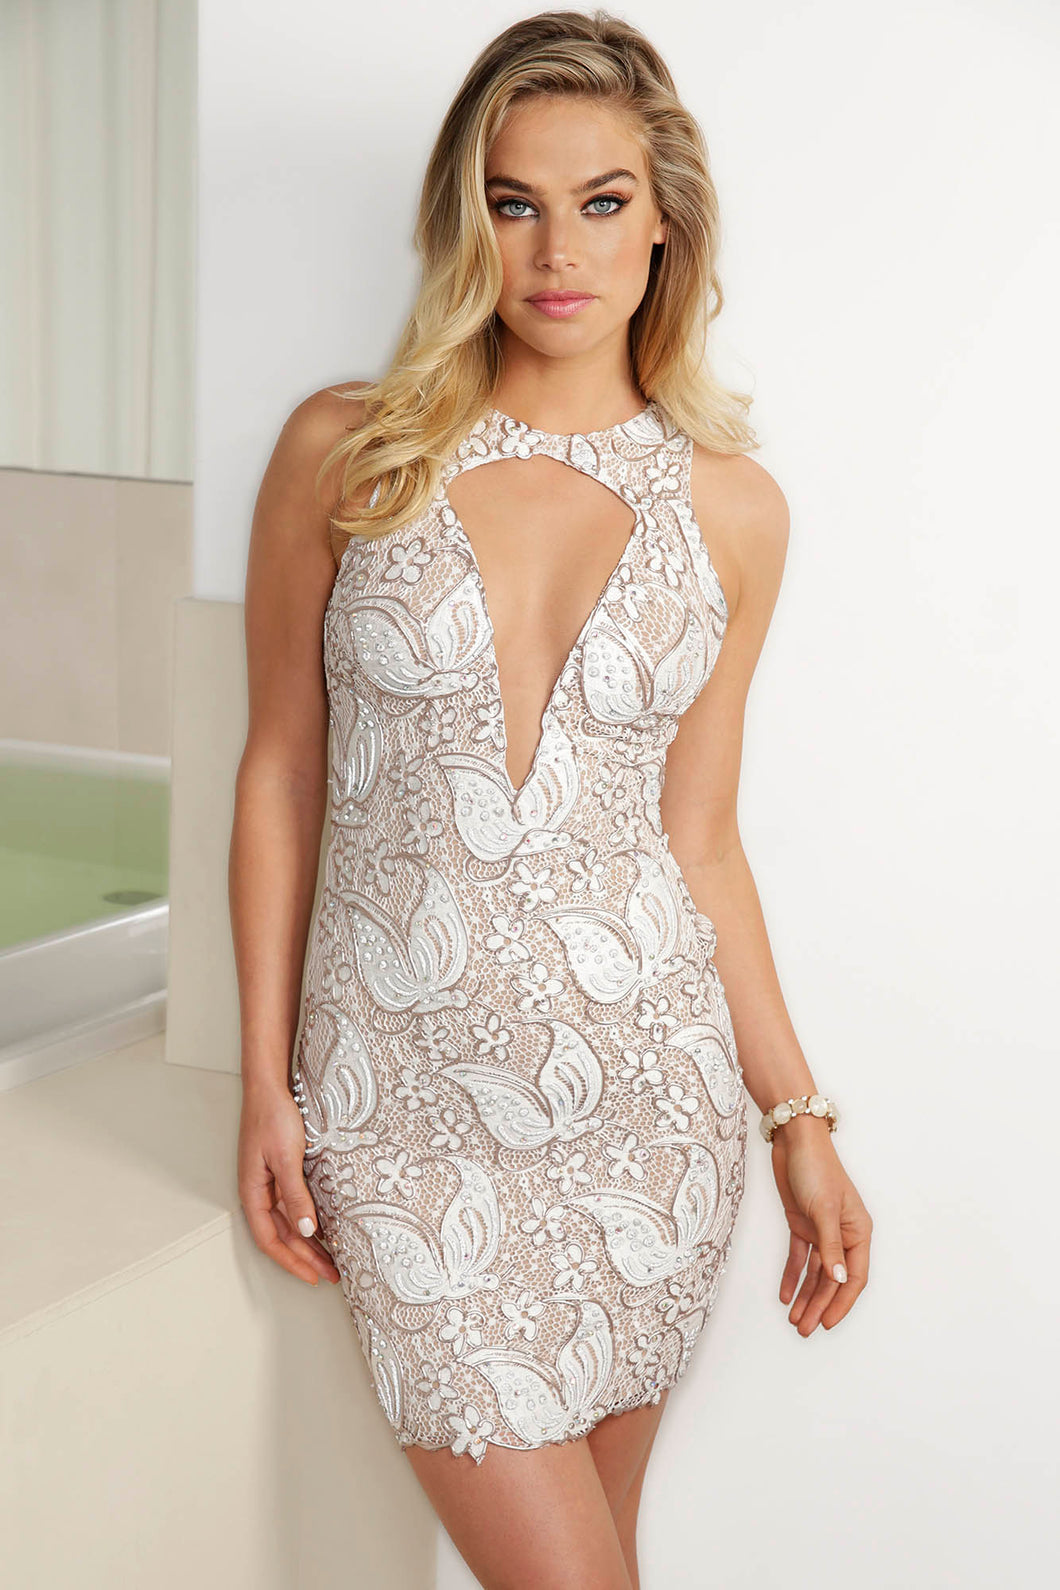 Lula White Platinum Caviar Cocktail Dress - Short Dress - BACCIO Couture